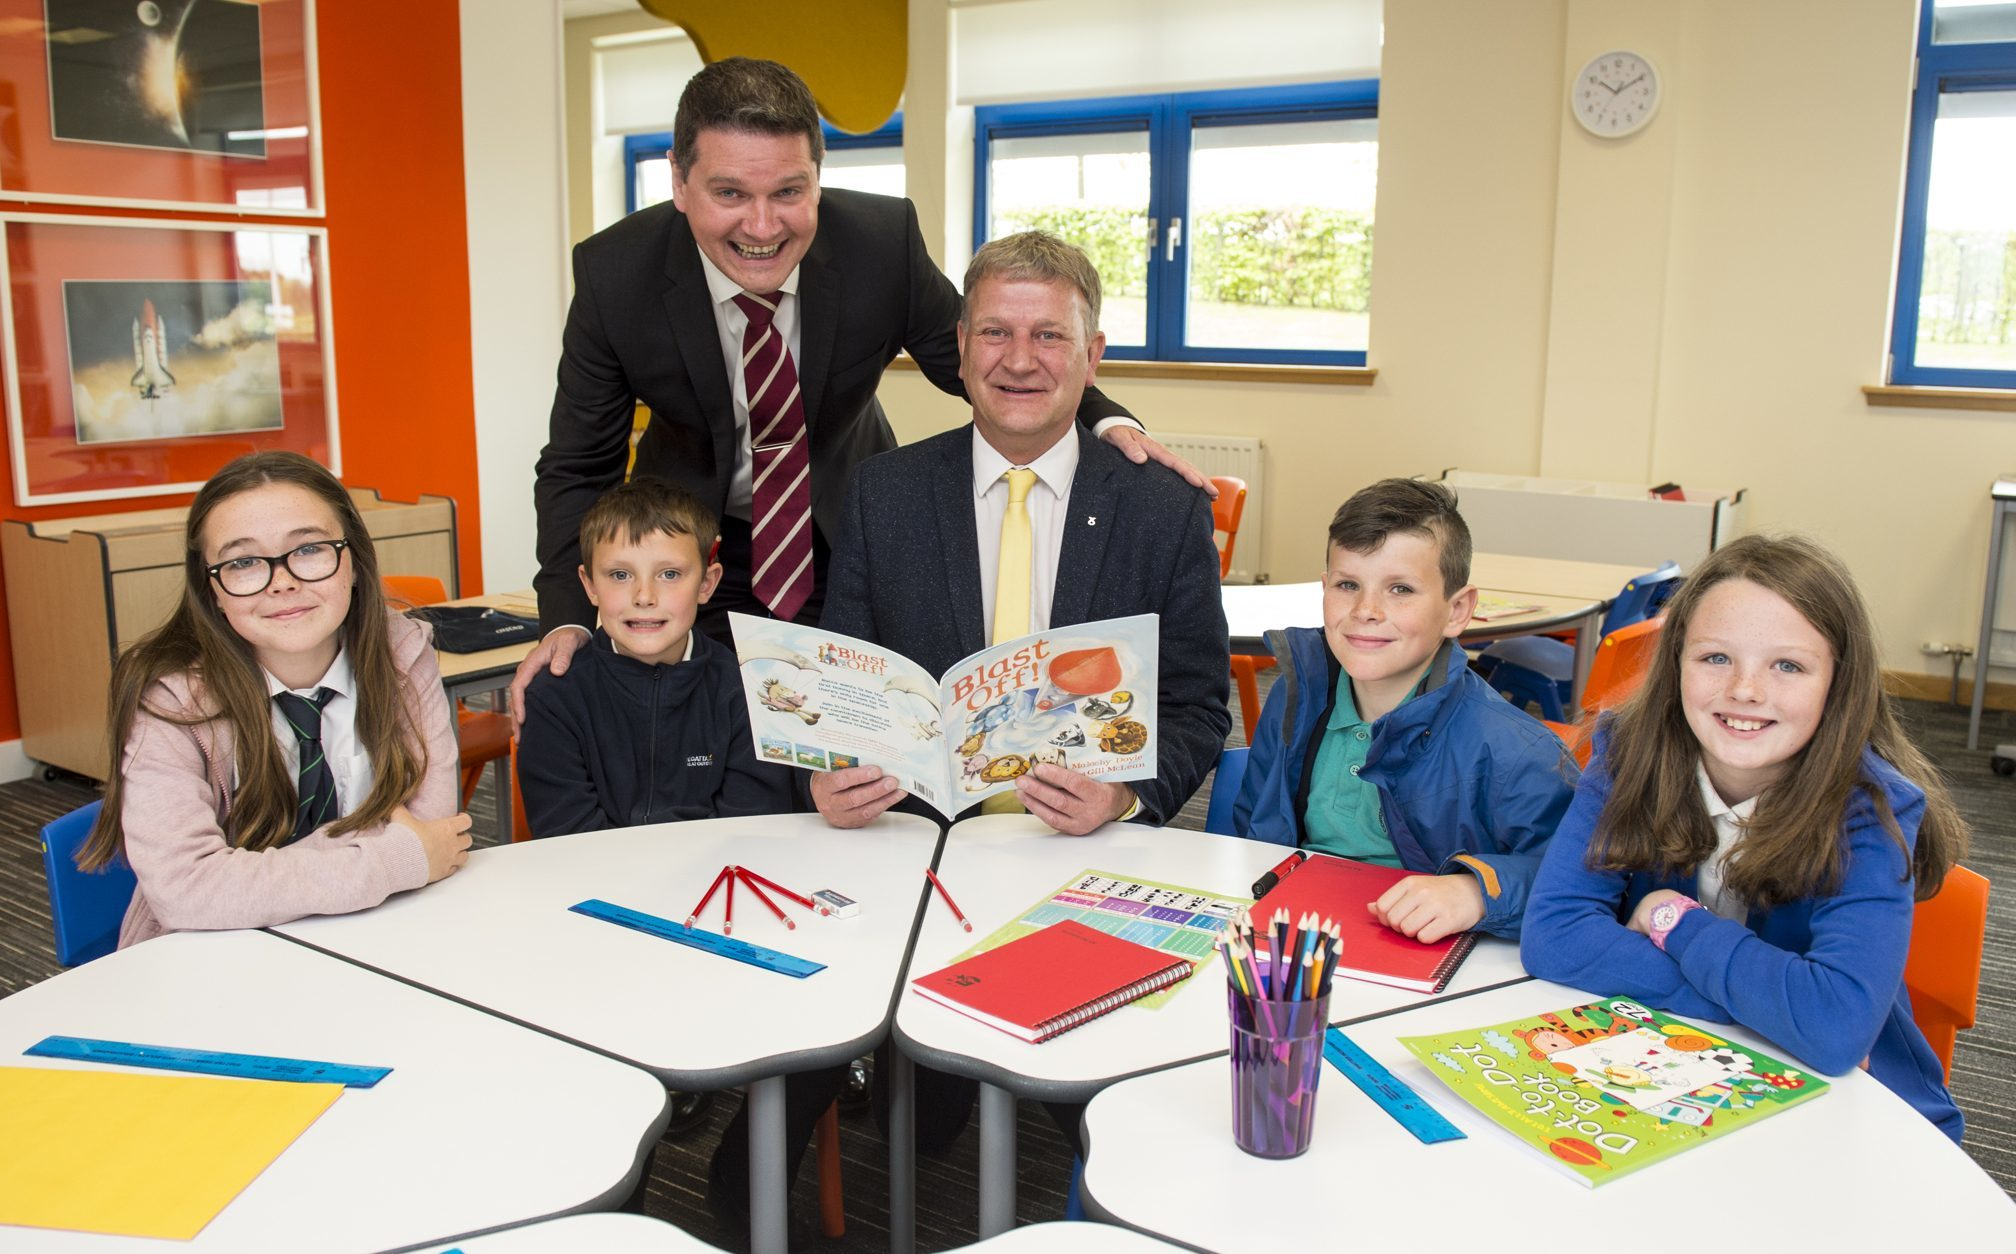 Children from Cowdenbeath Primary School joined David Torrance MSP and Havelock chief executive David Ritchie to try out the firmÕs new Imagine furniture range, which has been designed and manufactured by staff in Kirkcaldy.  Pic shows: l to r - Cowdenbeath Primary School pupils, Rebecca Kirk (11). Lucas Turner (8). David Ritchie, Chief Executive Officer at Havelock Europa. David Torrance MSP. Aaron Bradley (11). Karla Porteous (10).